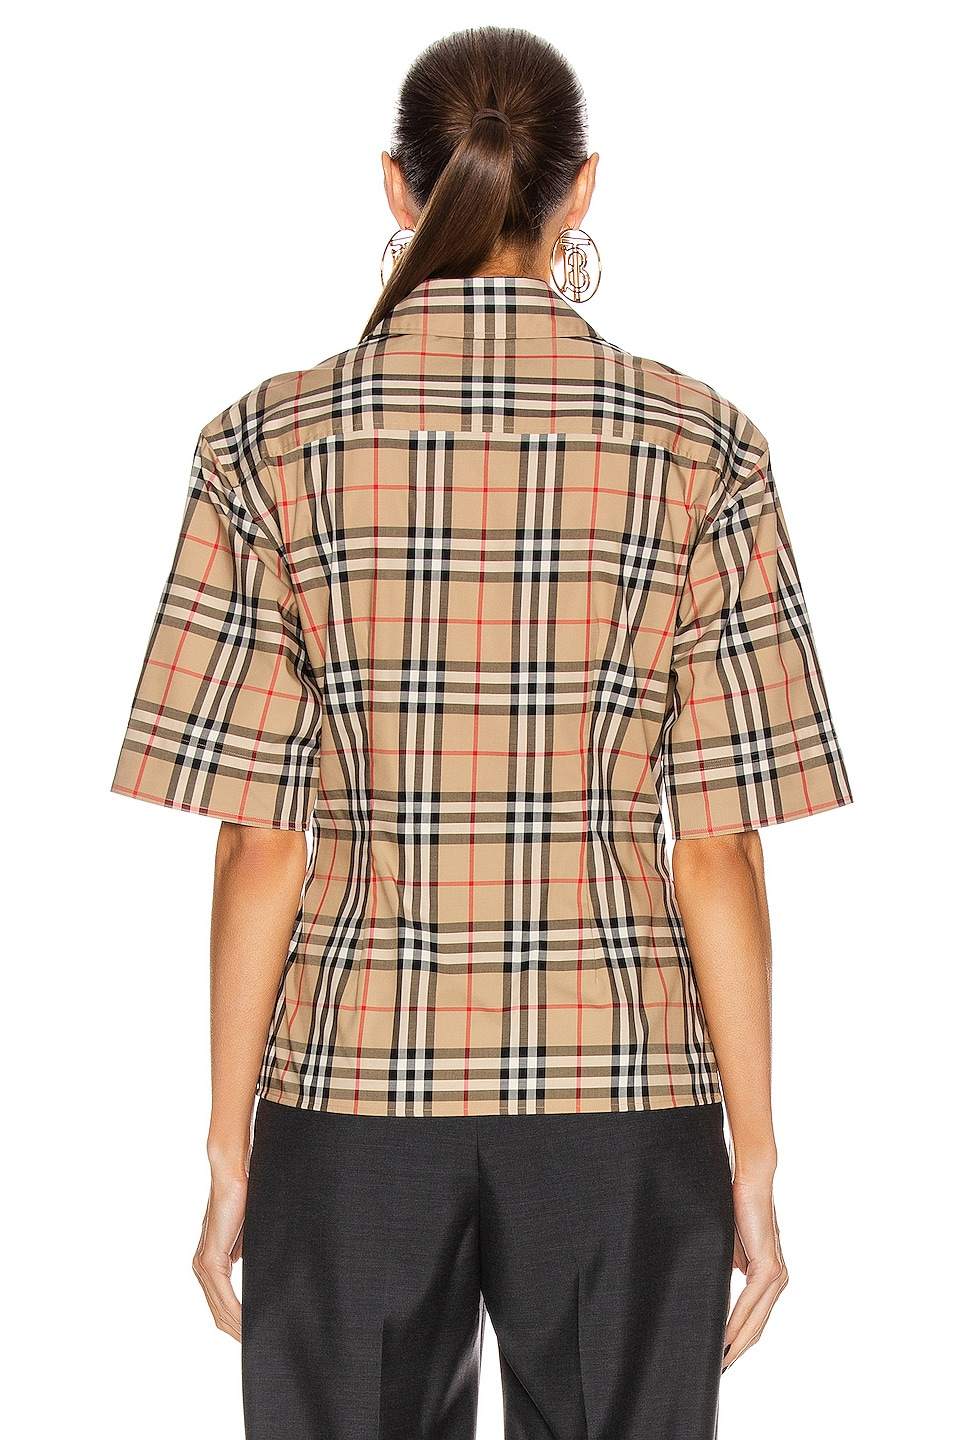 Image 5 of Burberry Short Sleeve Boxy Fit Top in Archive Beige Check